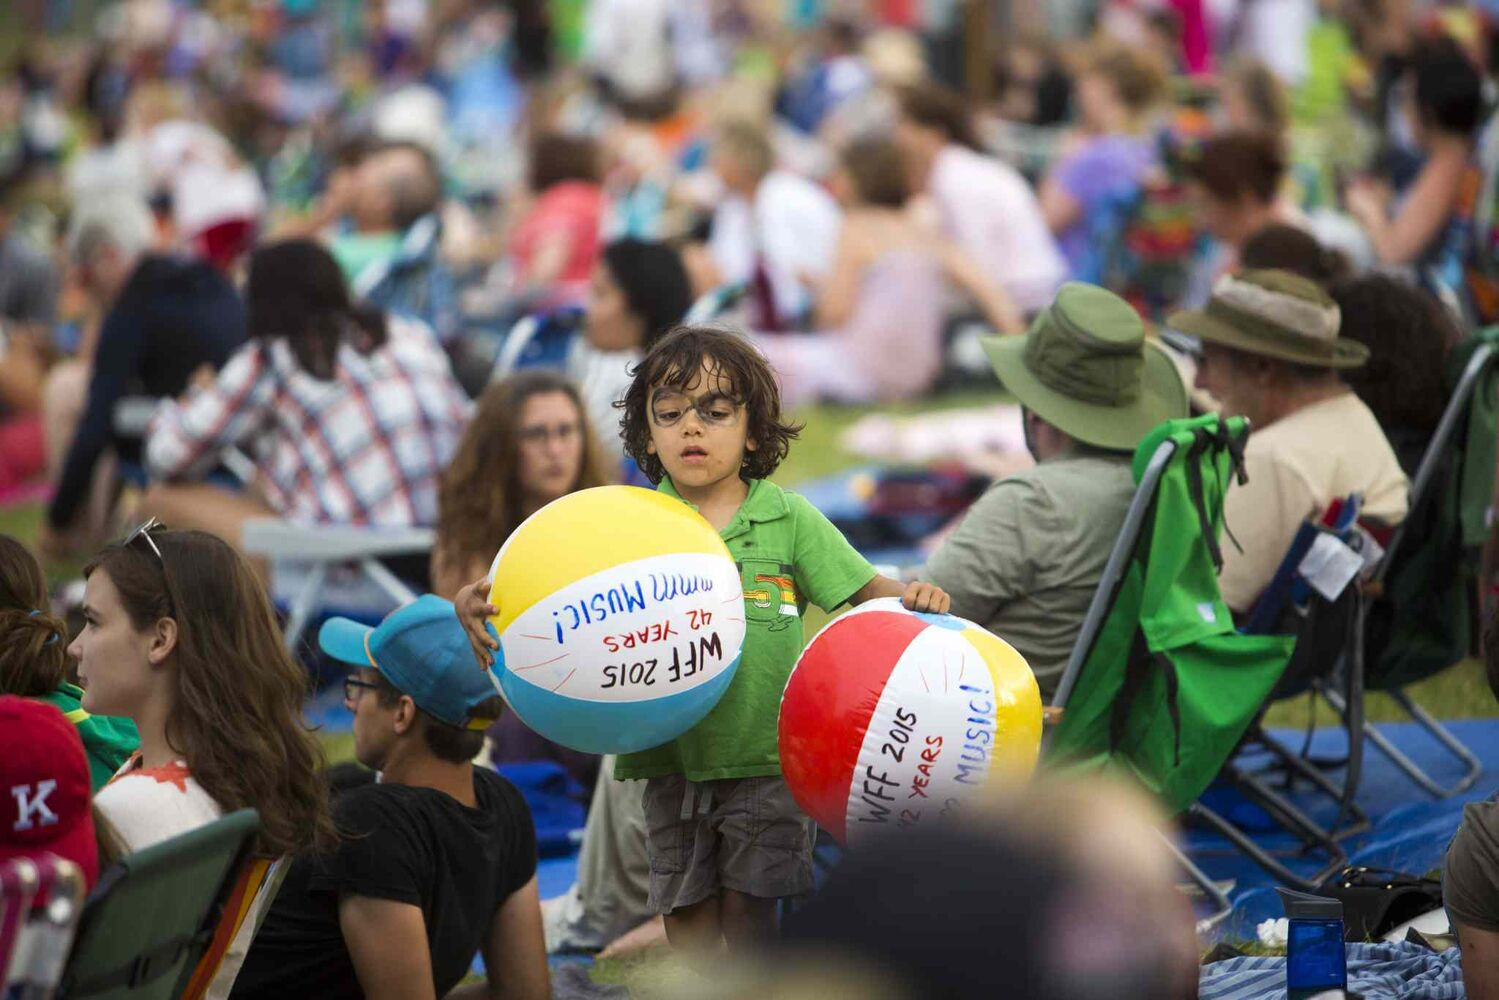 A kid carries beach balls through the crowd at the Winnipeg Folk Festival at Birds Hill Provincial Park on Saturday, July 11, 2015.   Mikaela MacKenzie / Winnipeg Free Press (Winnipeg Free Press)